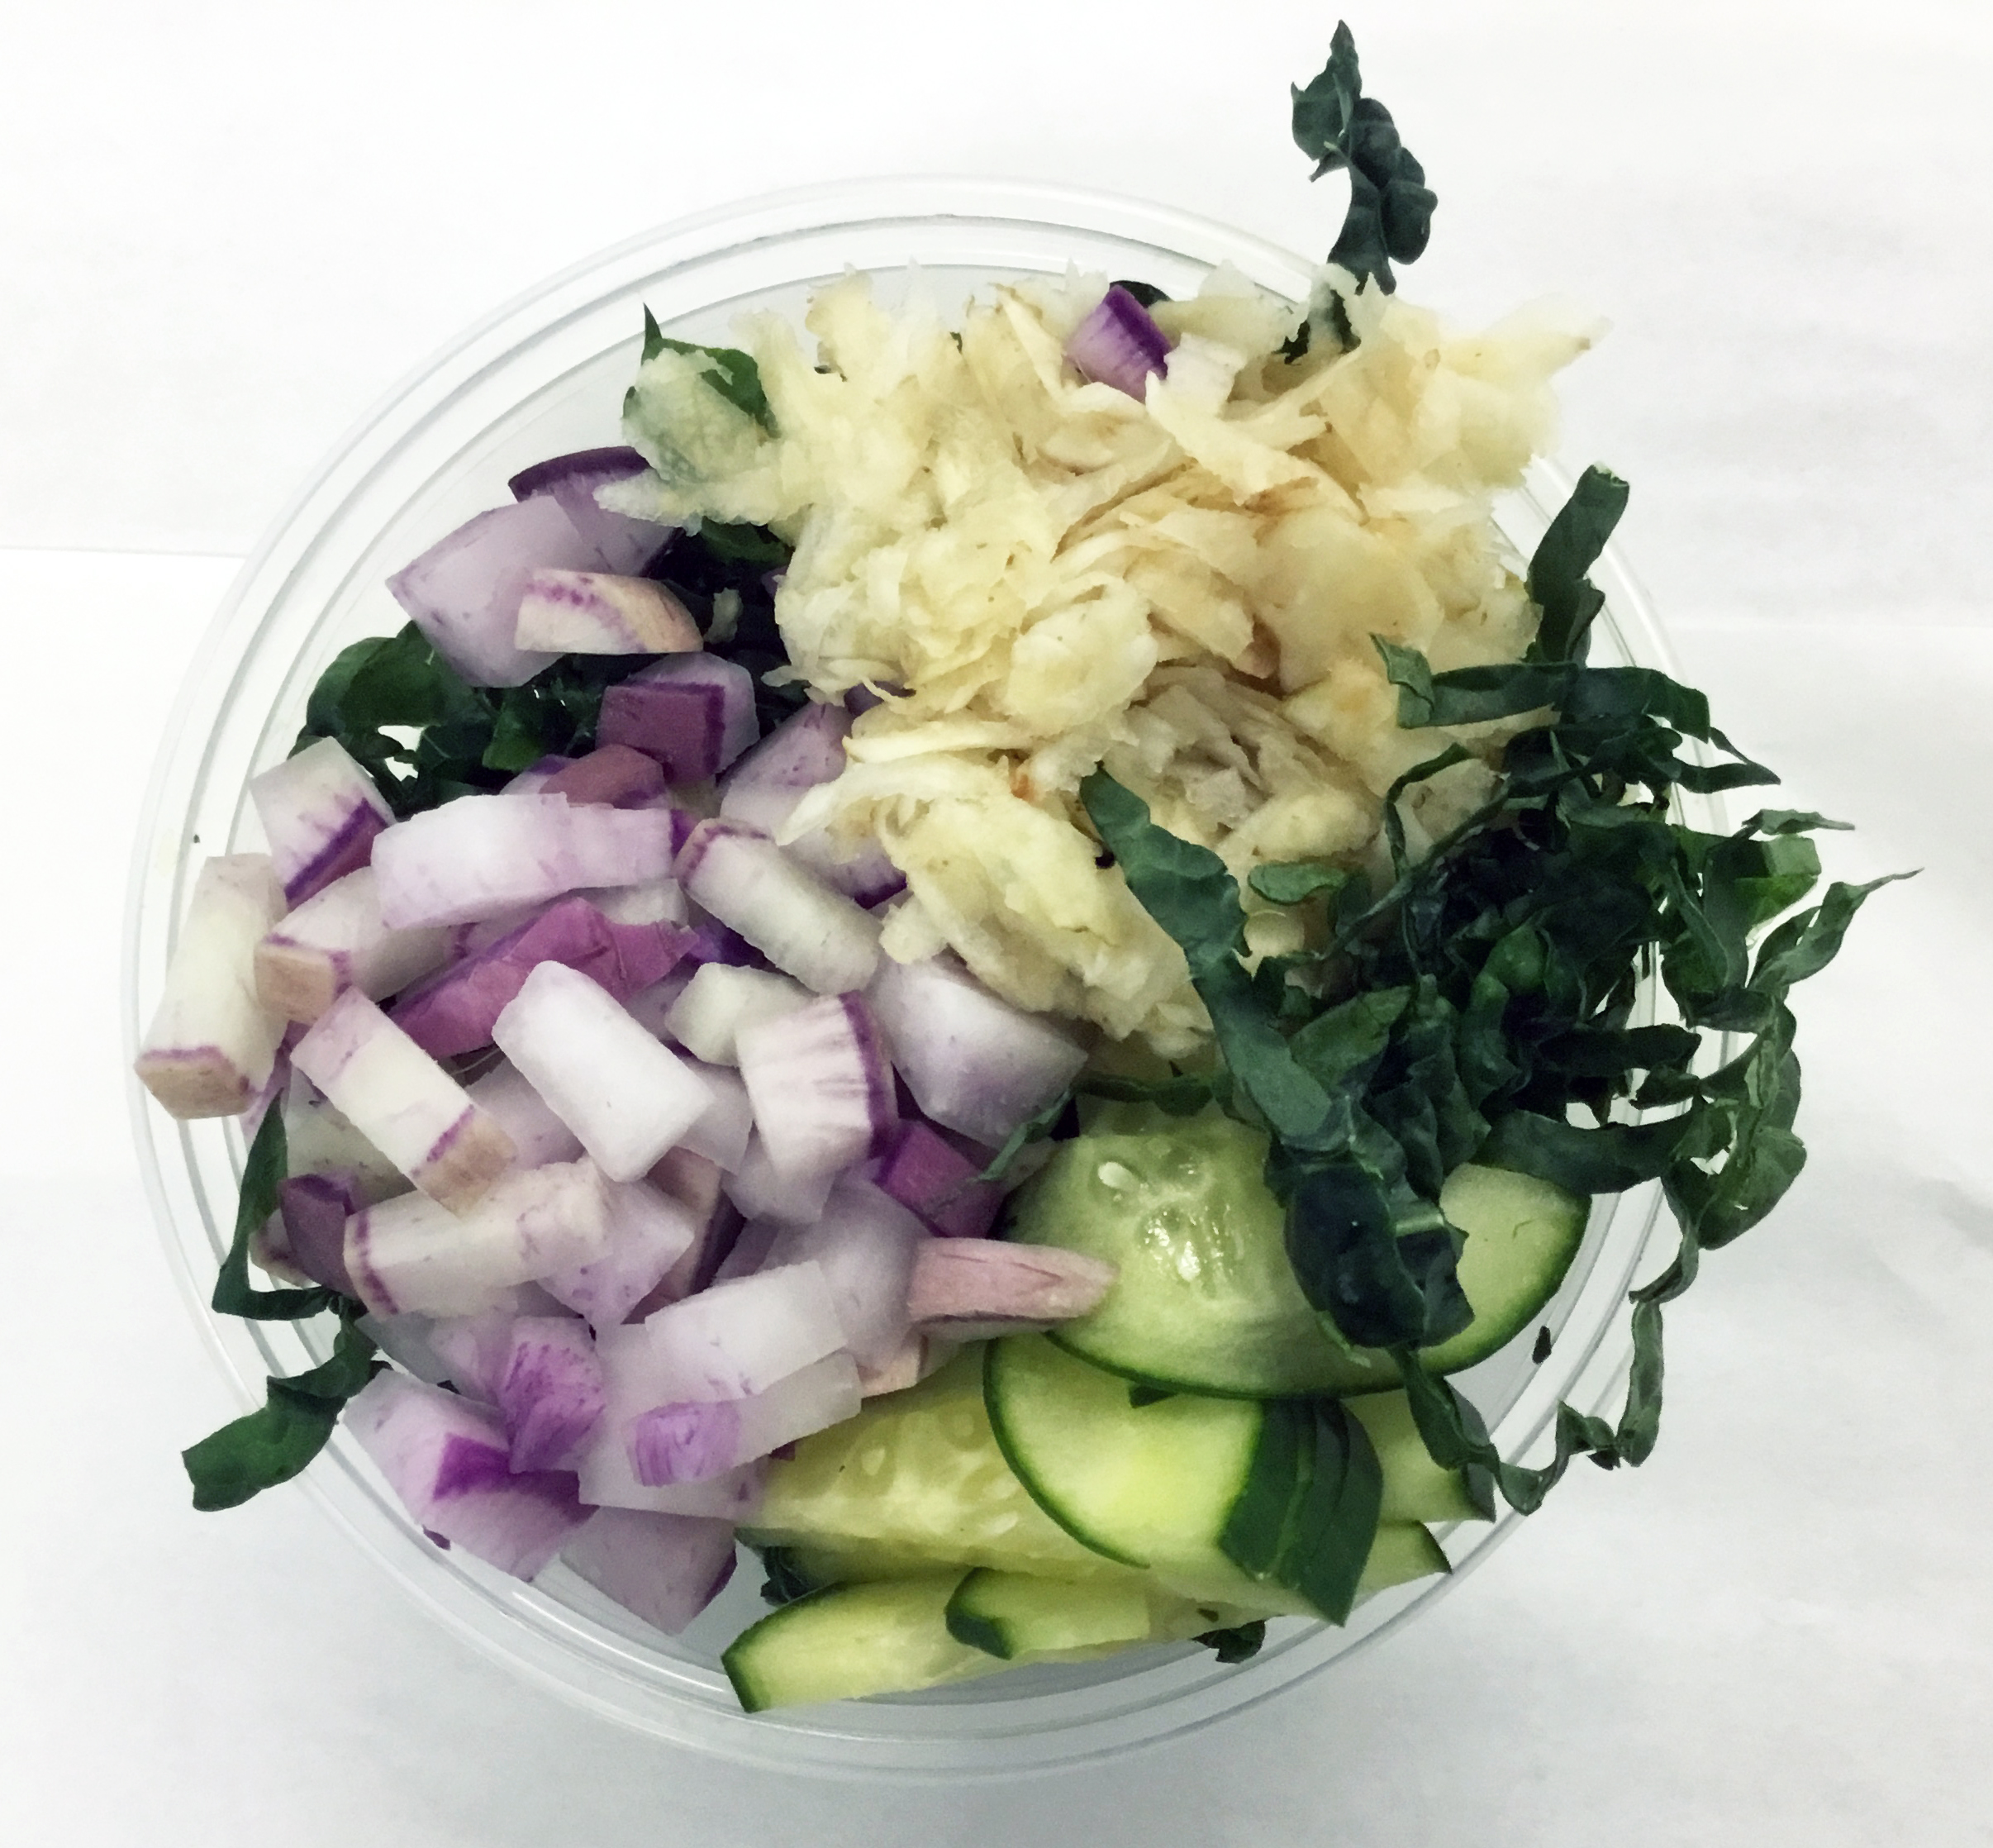 Lacinato kale salad with purple radish, celery root and cucumber.